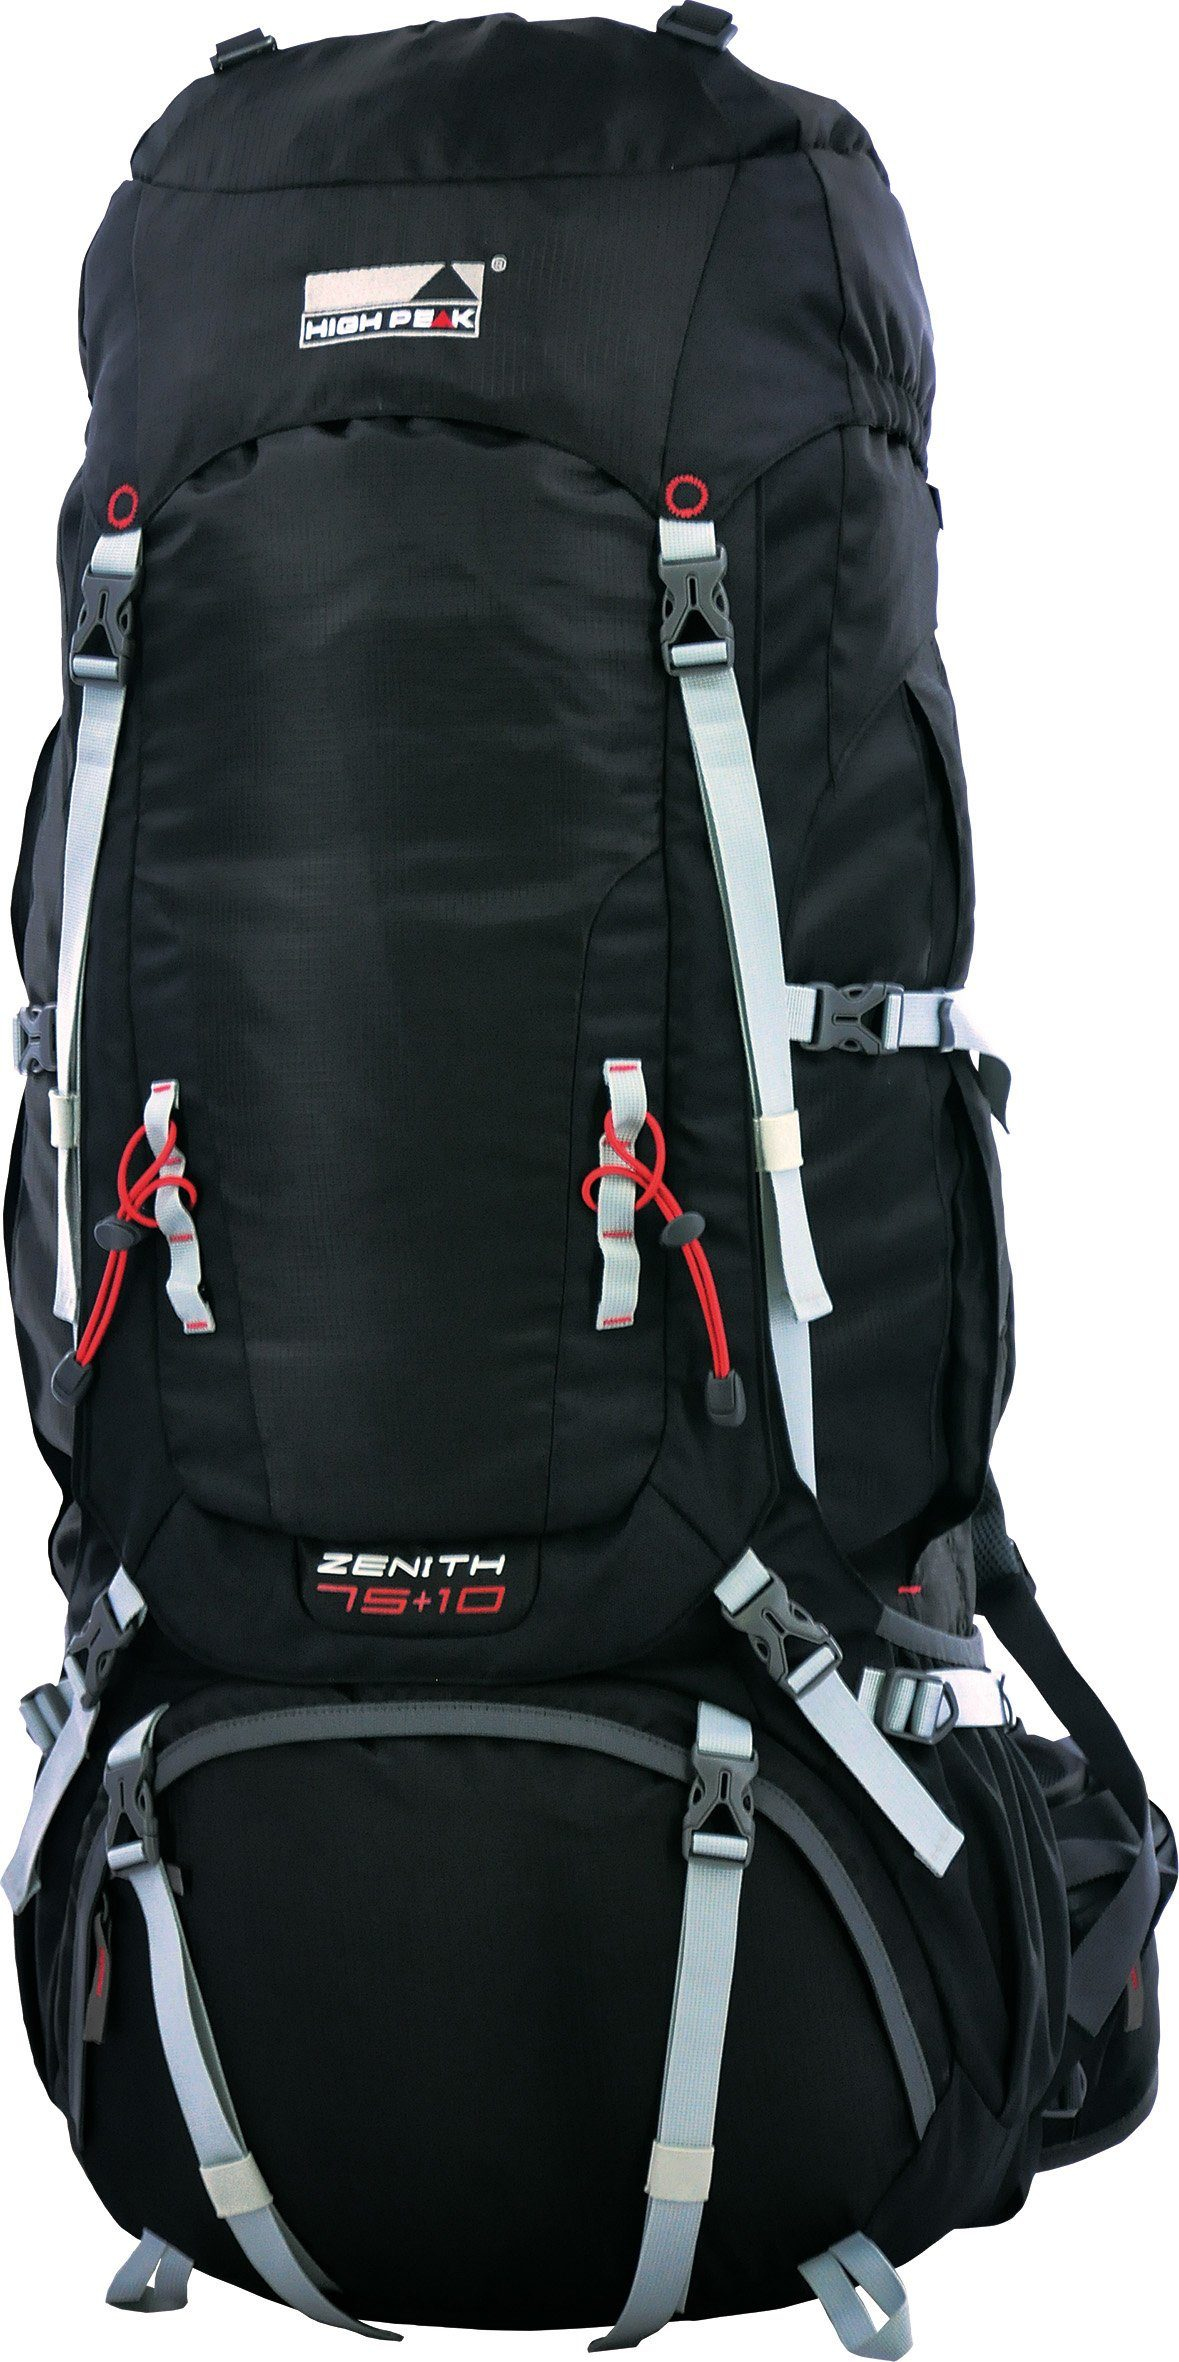 High Peak Tourenrucksack, »Zenith 75+10«